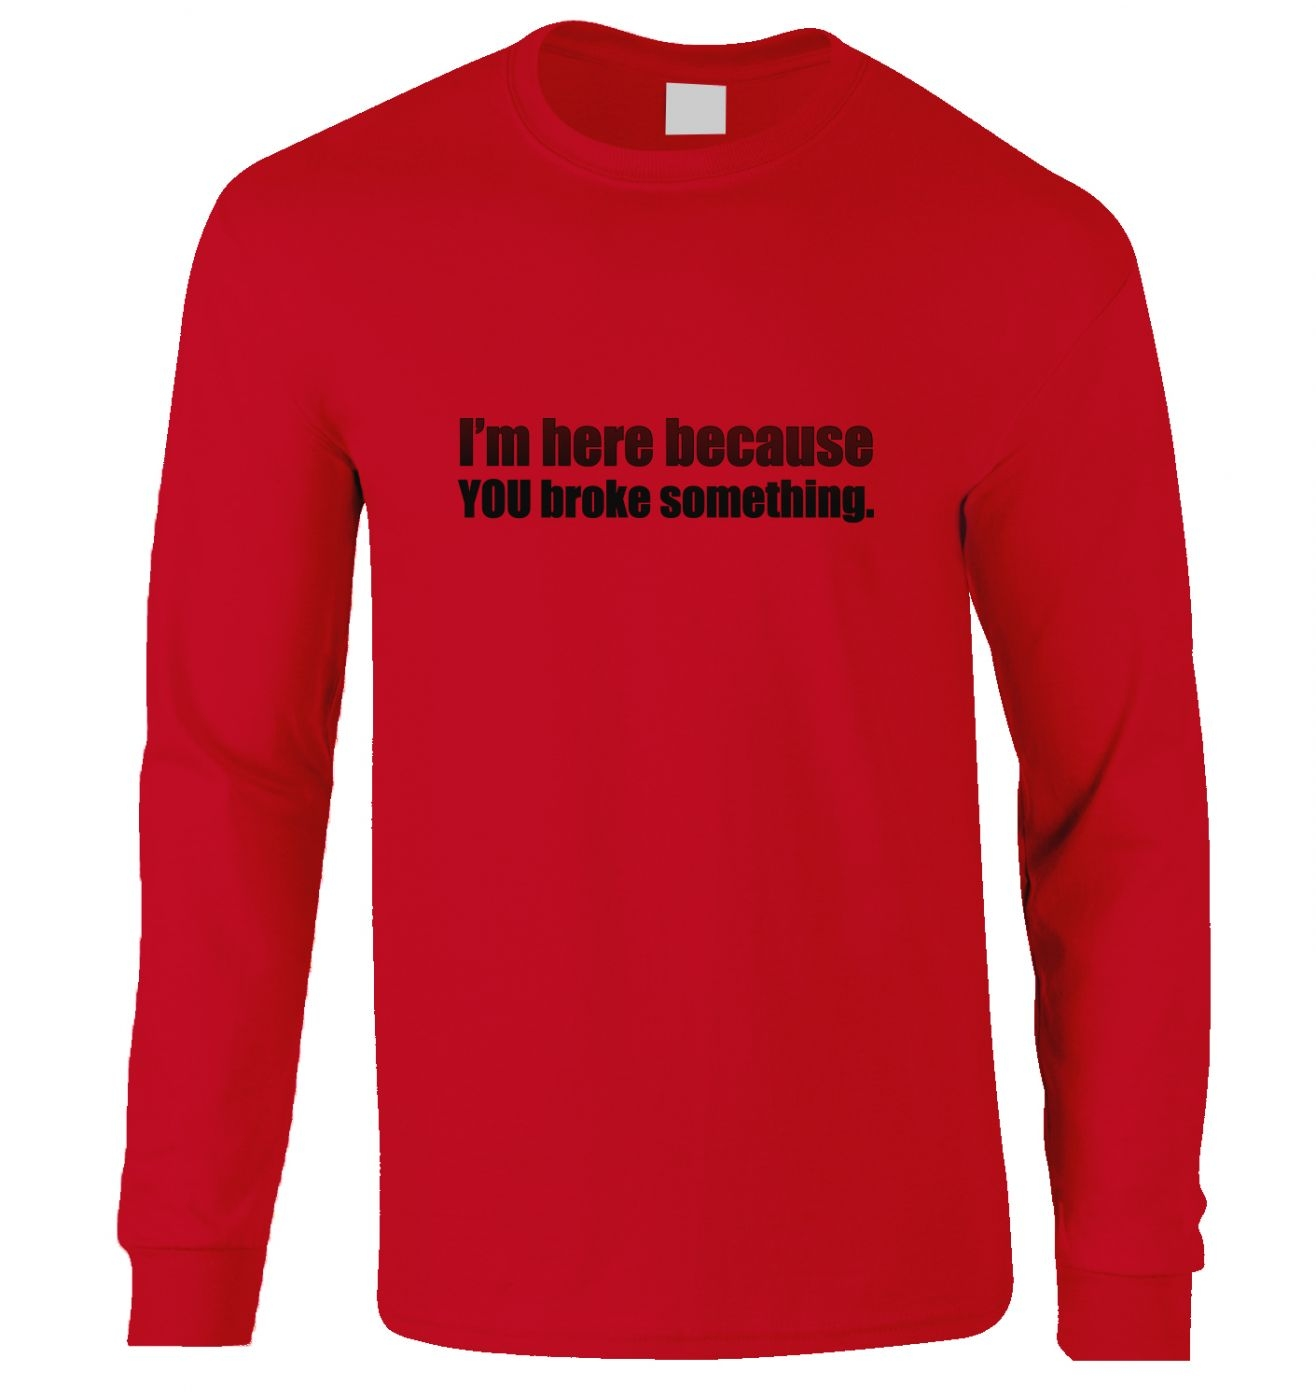 I'm Here Because You Broke Something long-sleeved t-shirt